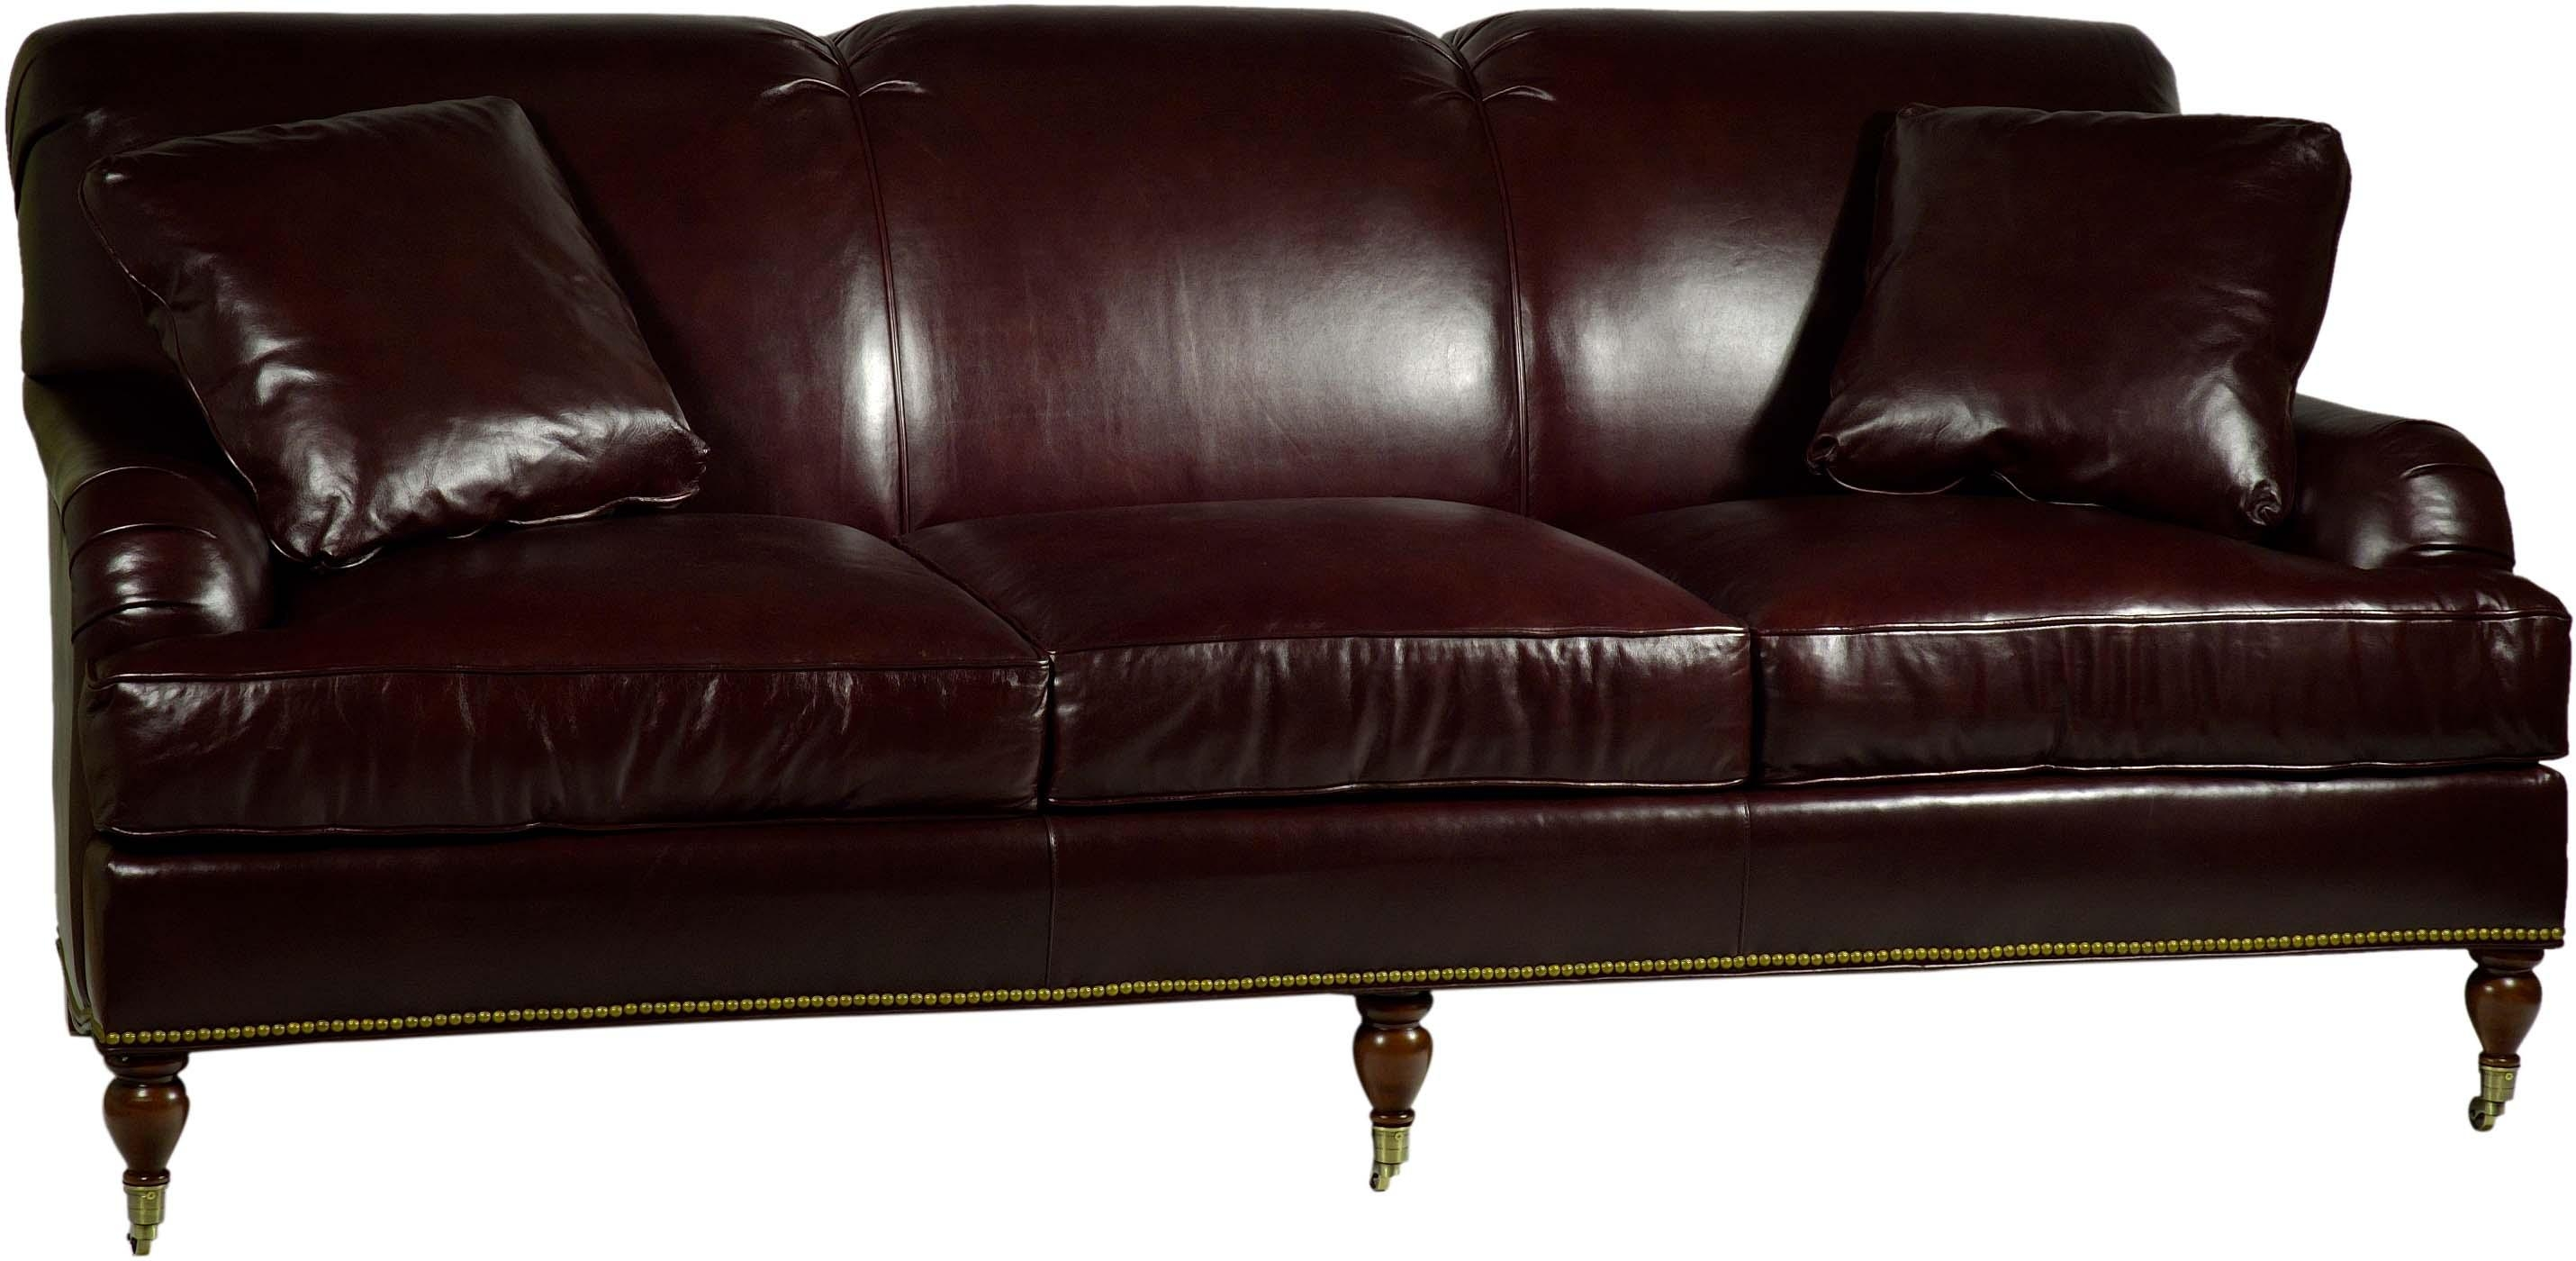 Sofas : Awesome Pillow Back Sofa English Arm Loveseat Sofa Modern For Classic English Sofas (View 11 of 21)